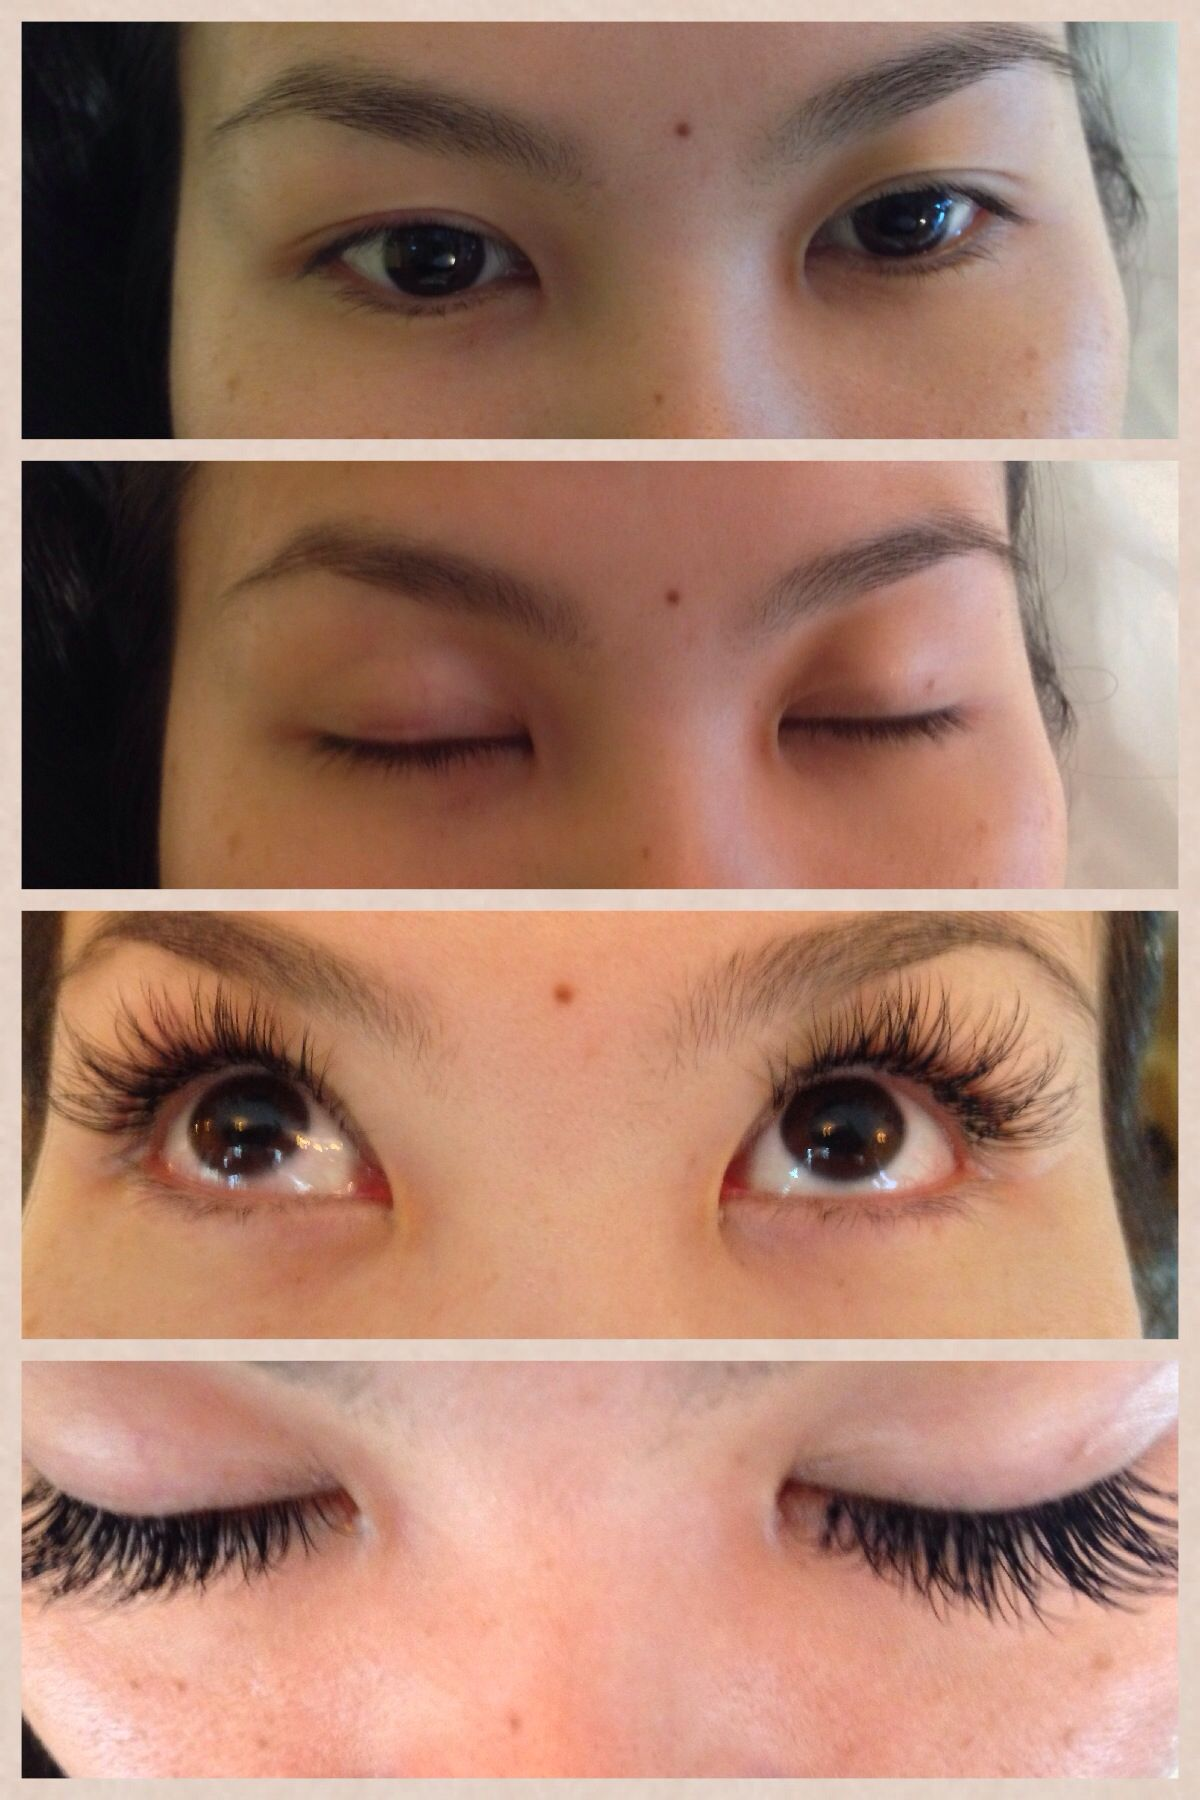 Argan Oil Eyebrows : argan, eyebrows, Argan, Eyebrows, Before, After, Eyebrow, Poster